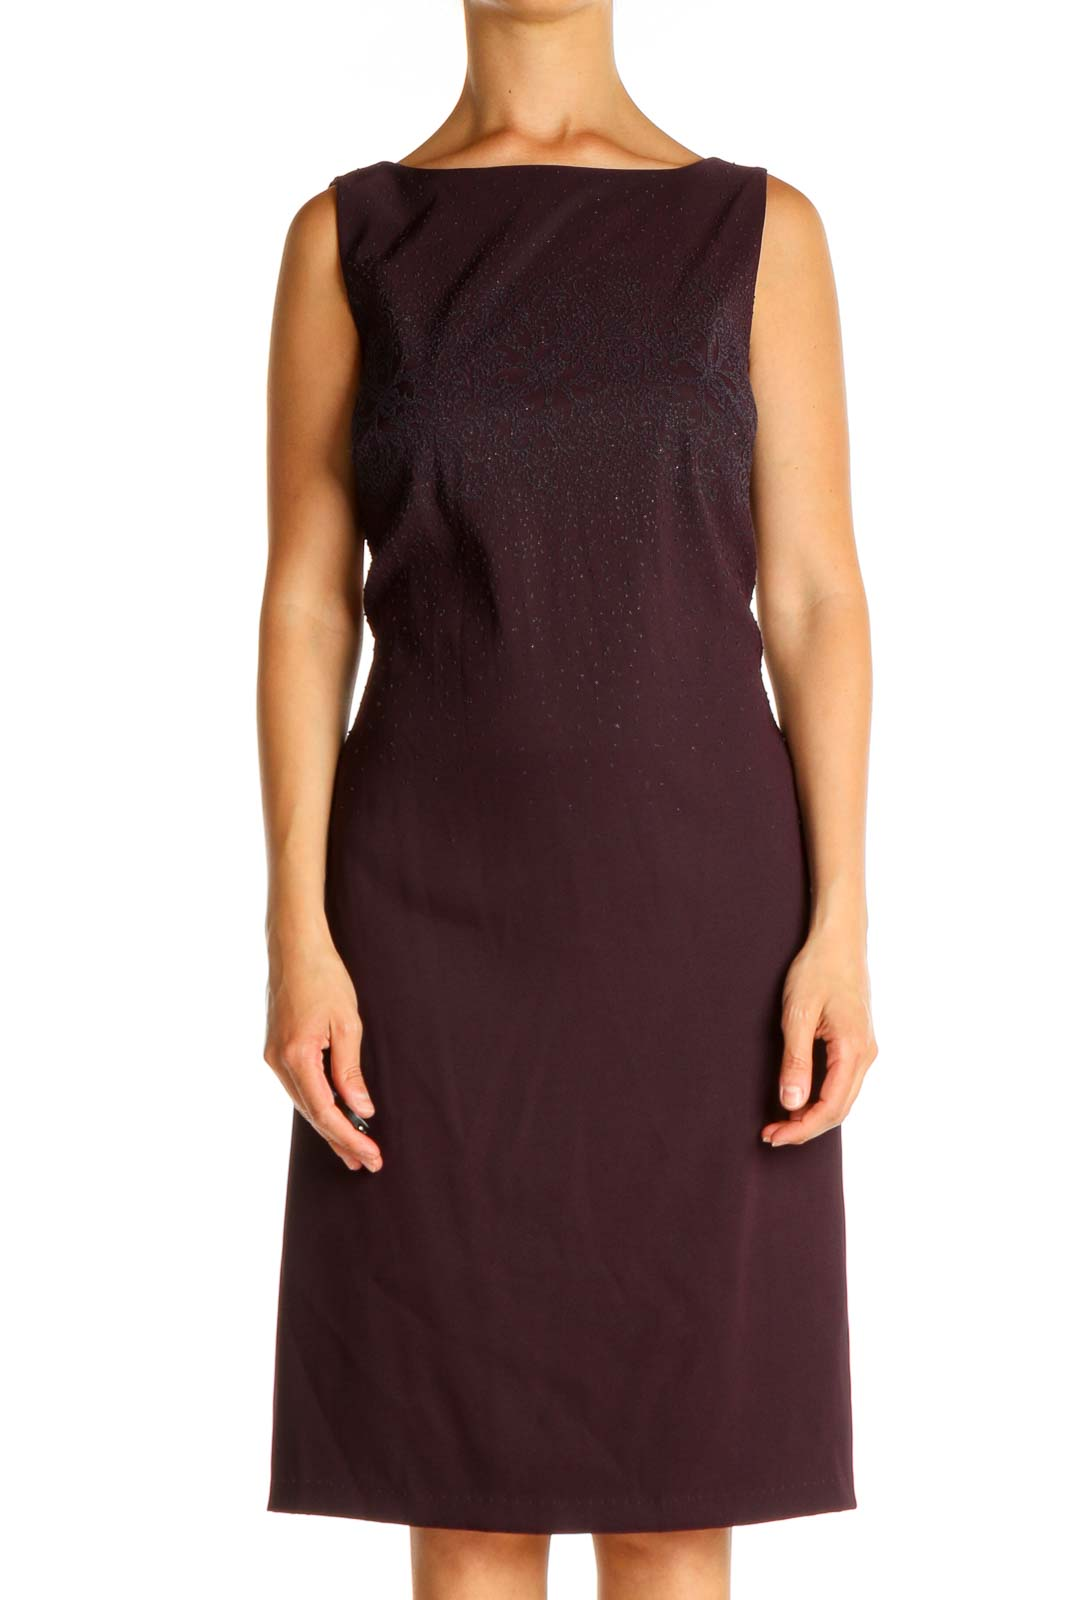 Purple Solid Sequin Classic Holiday Sheath Dress Front